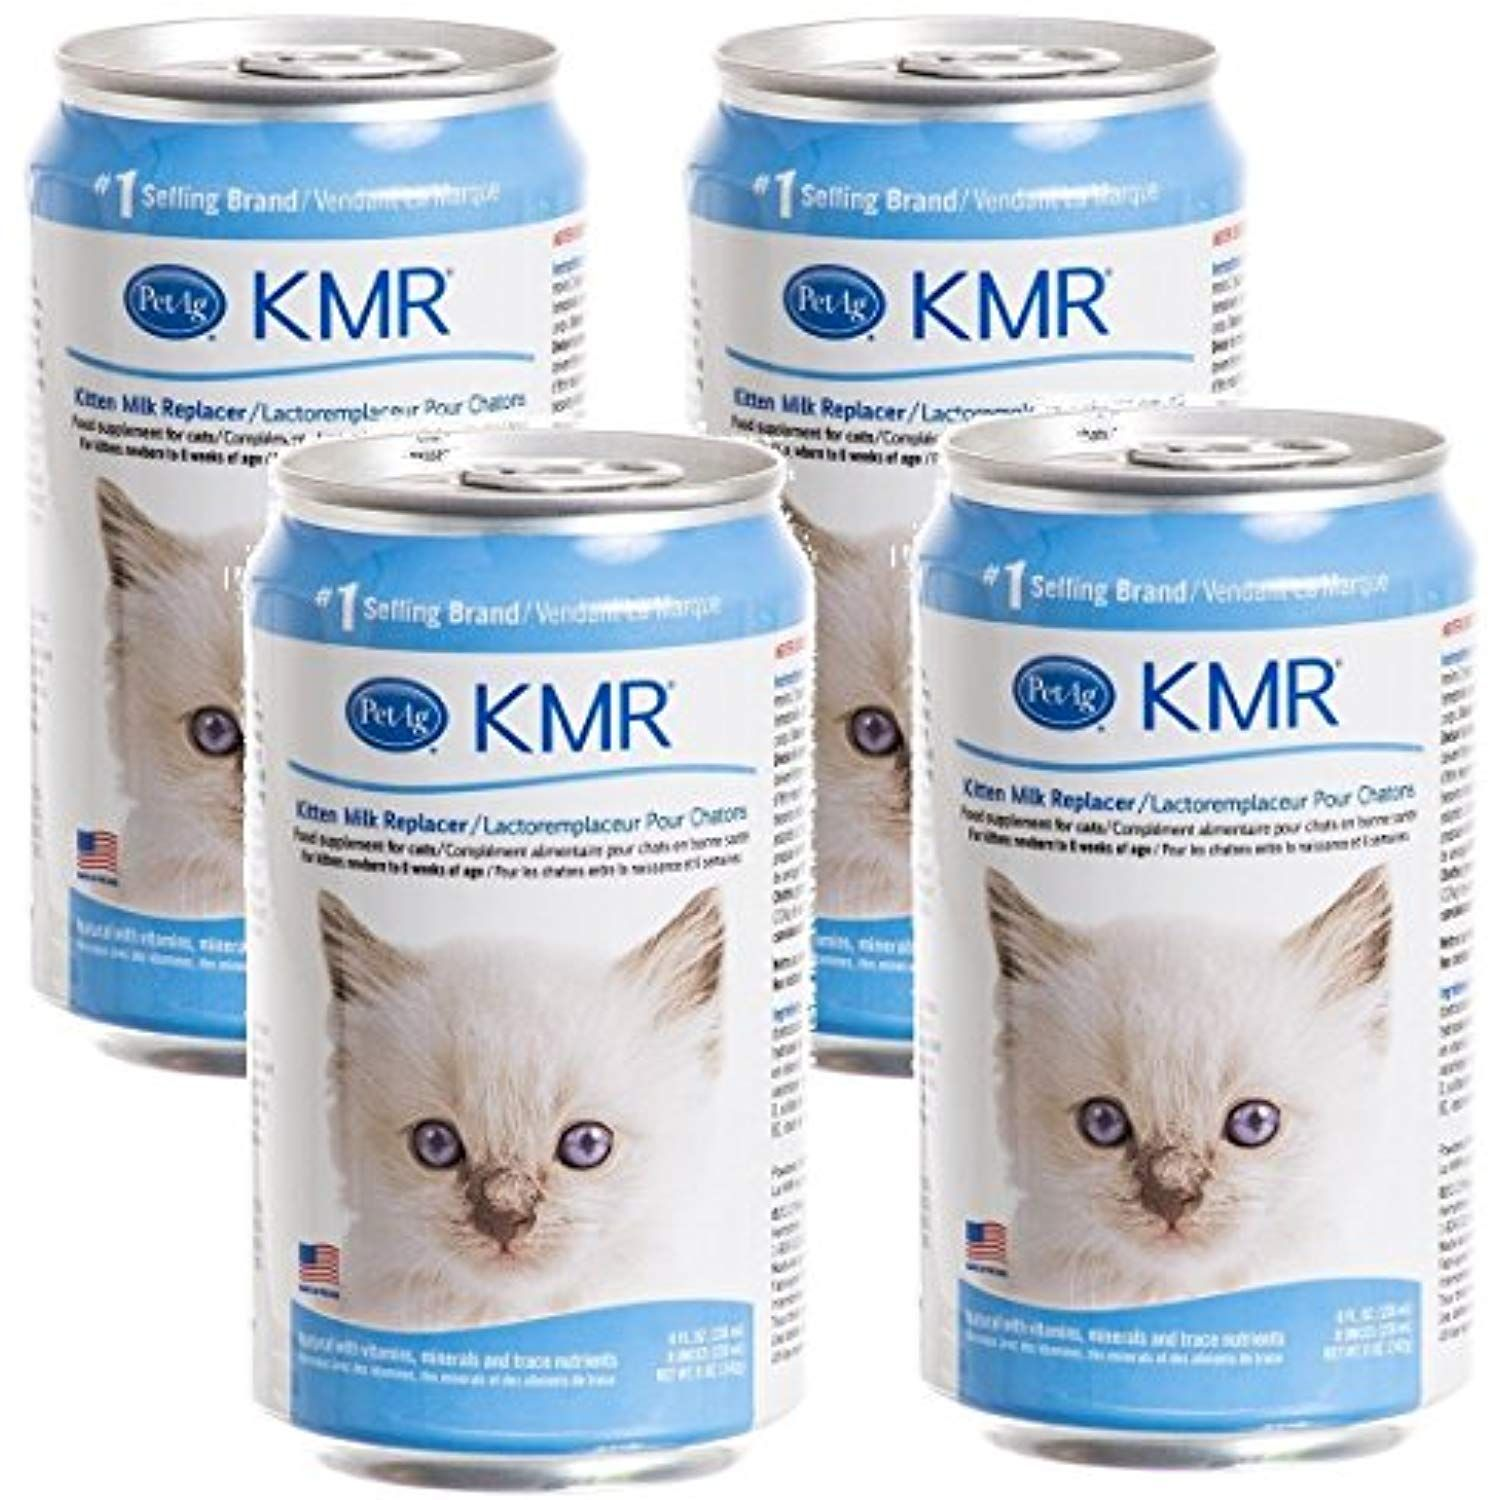 4 Pack Kmr Liquid Milk Replacer For Kittens And Cats 8 Ounce Cans Check Out The Image By Visiting The Link This Is An Affiliate L With Images Kittens Cat Food Cats